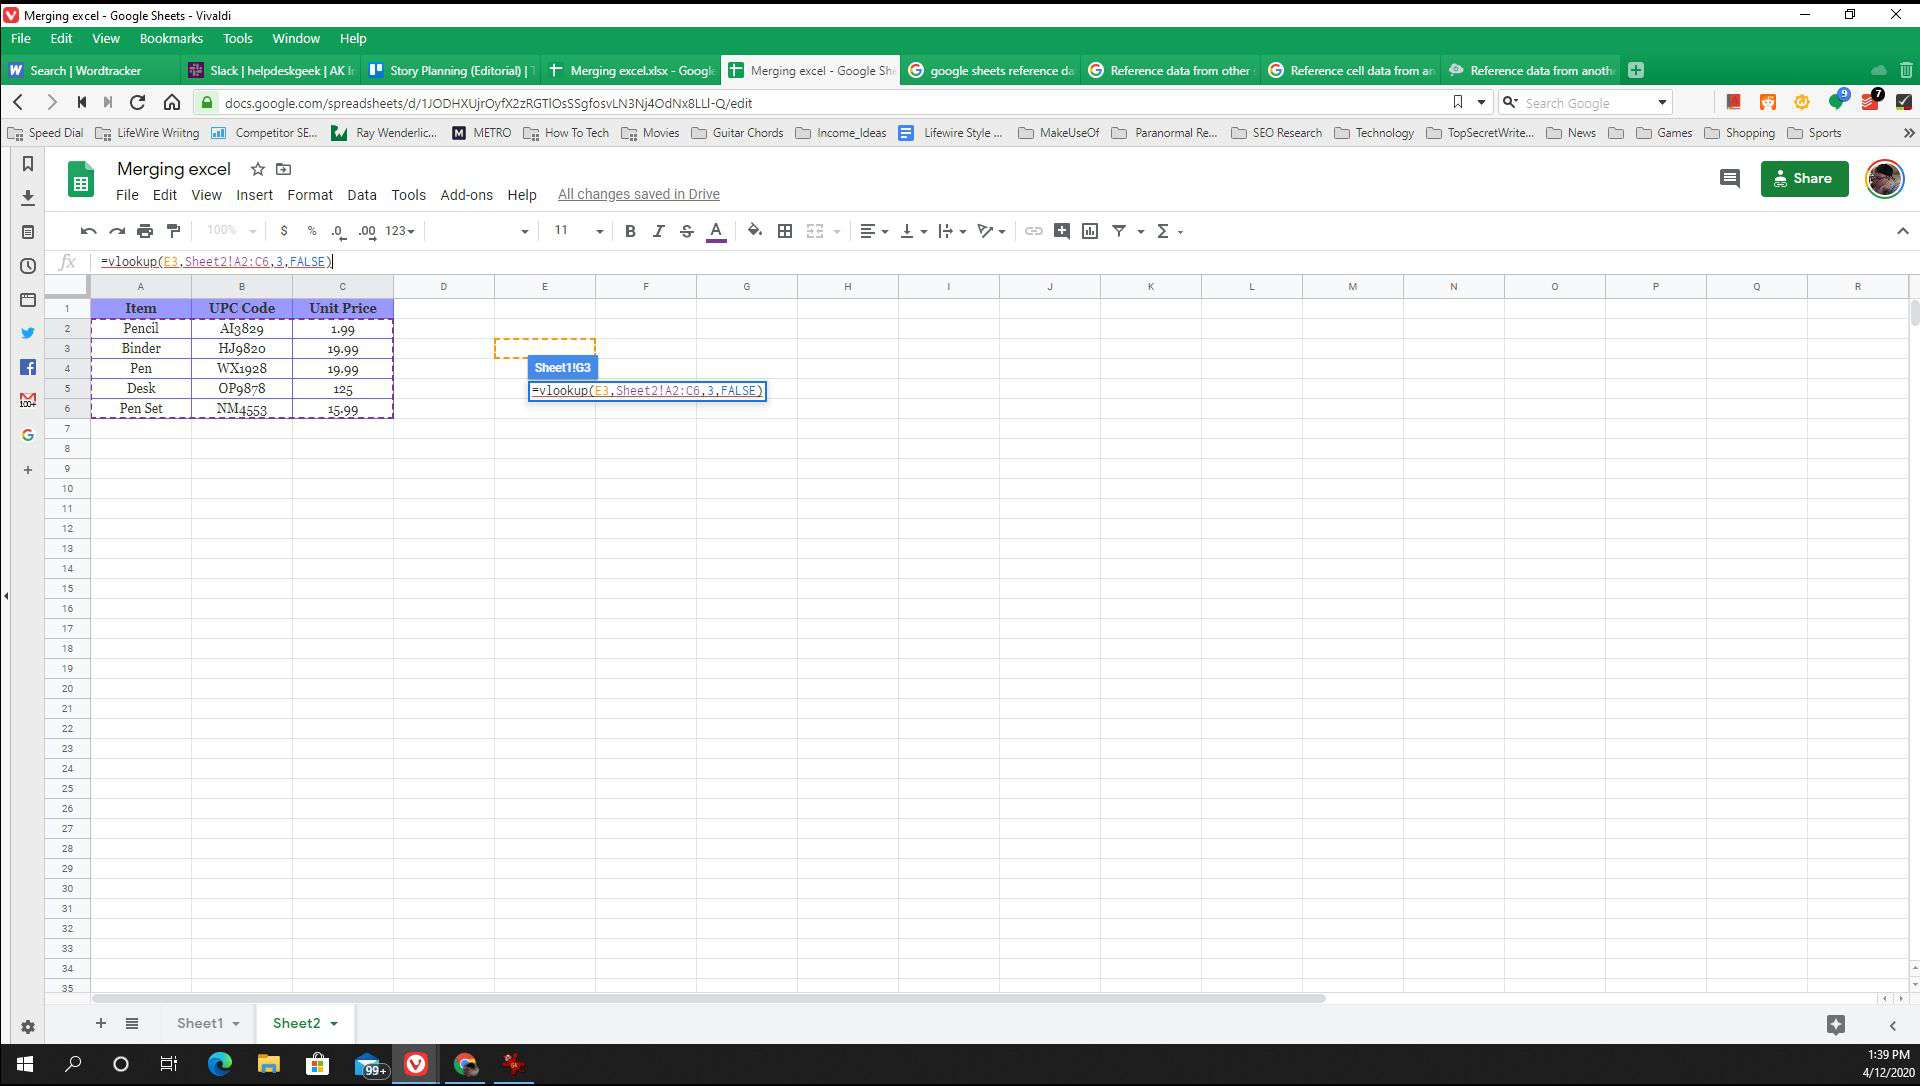 How To Use Sheets To Reference Data From Another Sheet